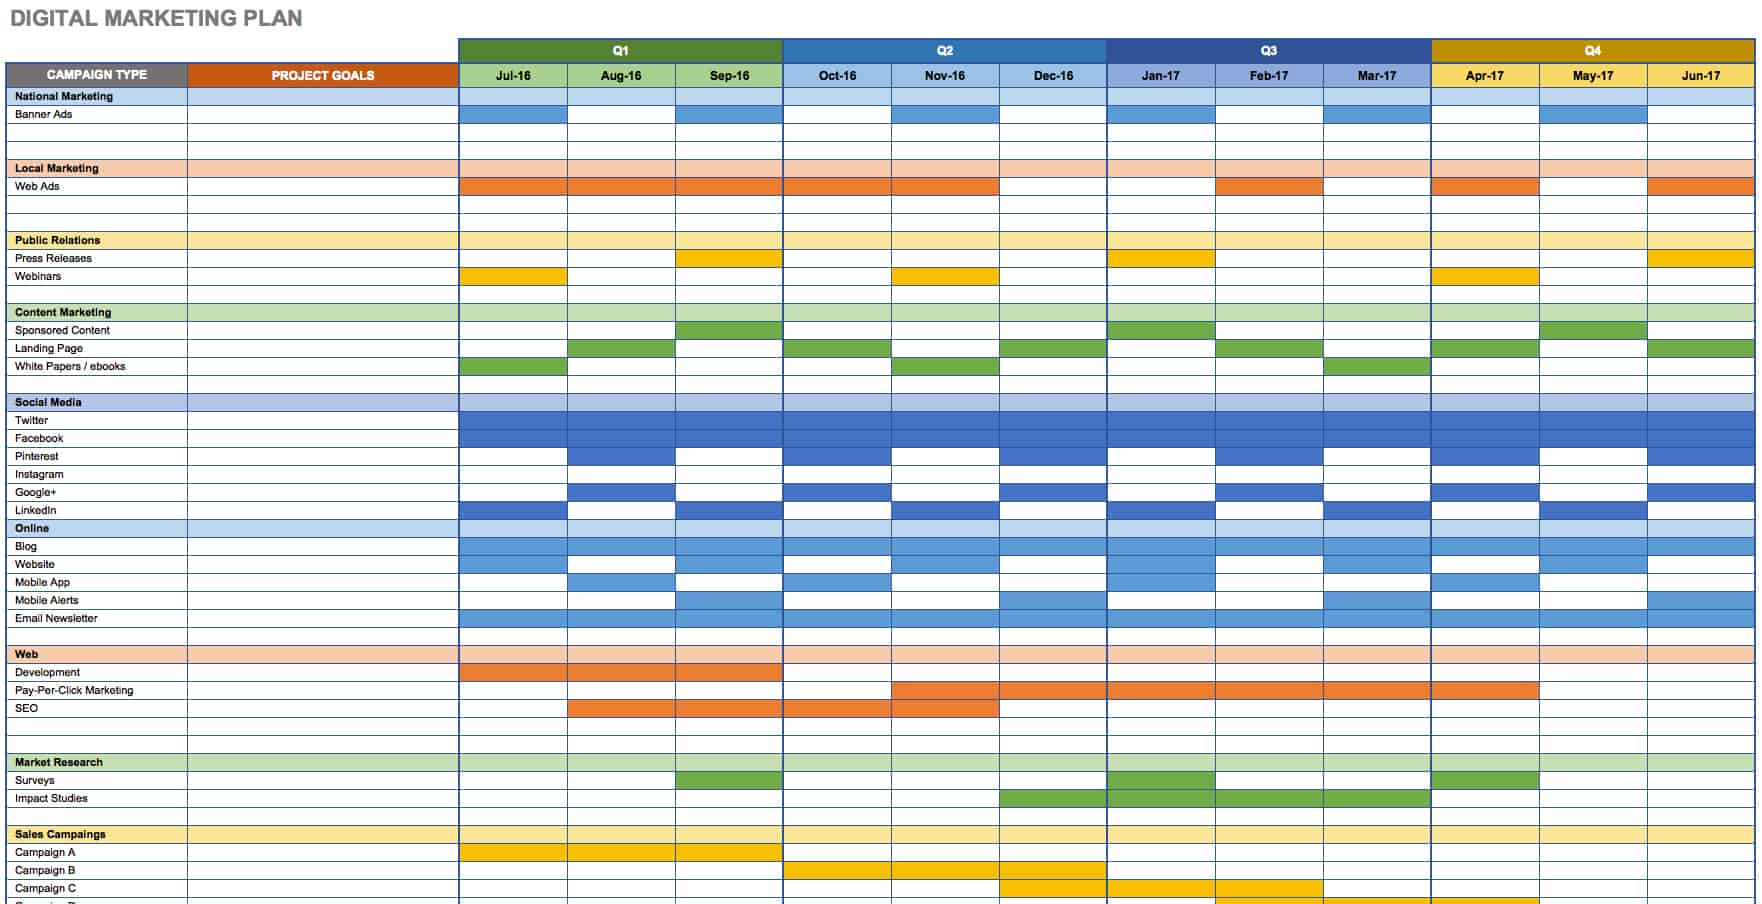 Free Marketing Plan Templates For Excel Smartsheet - Sample marketing calendar